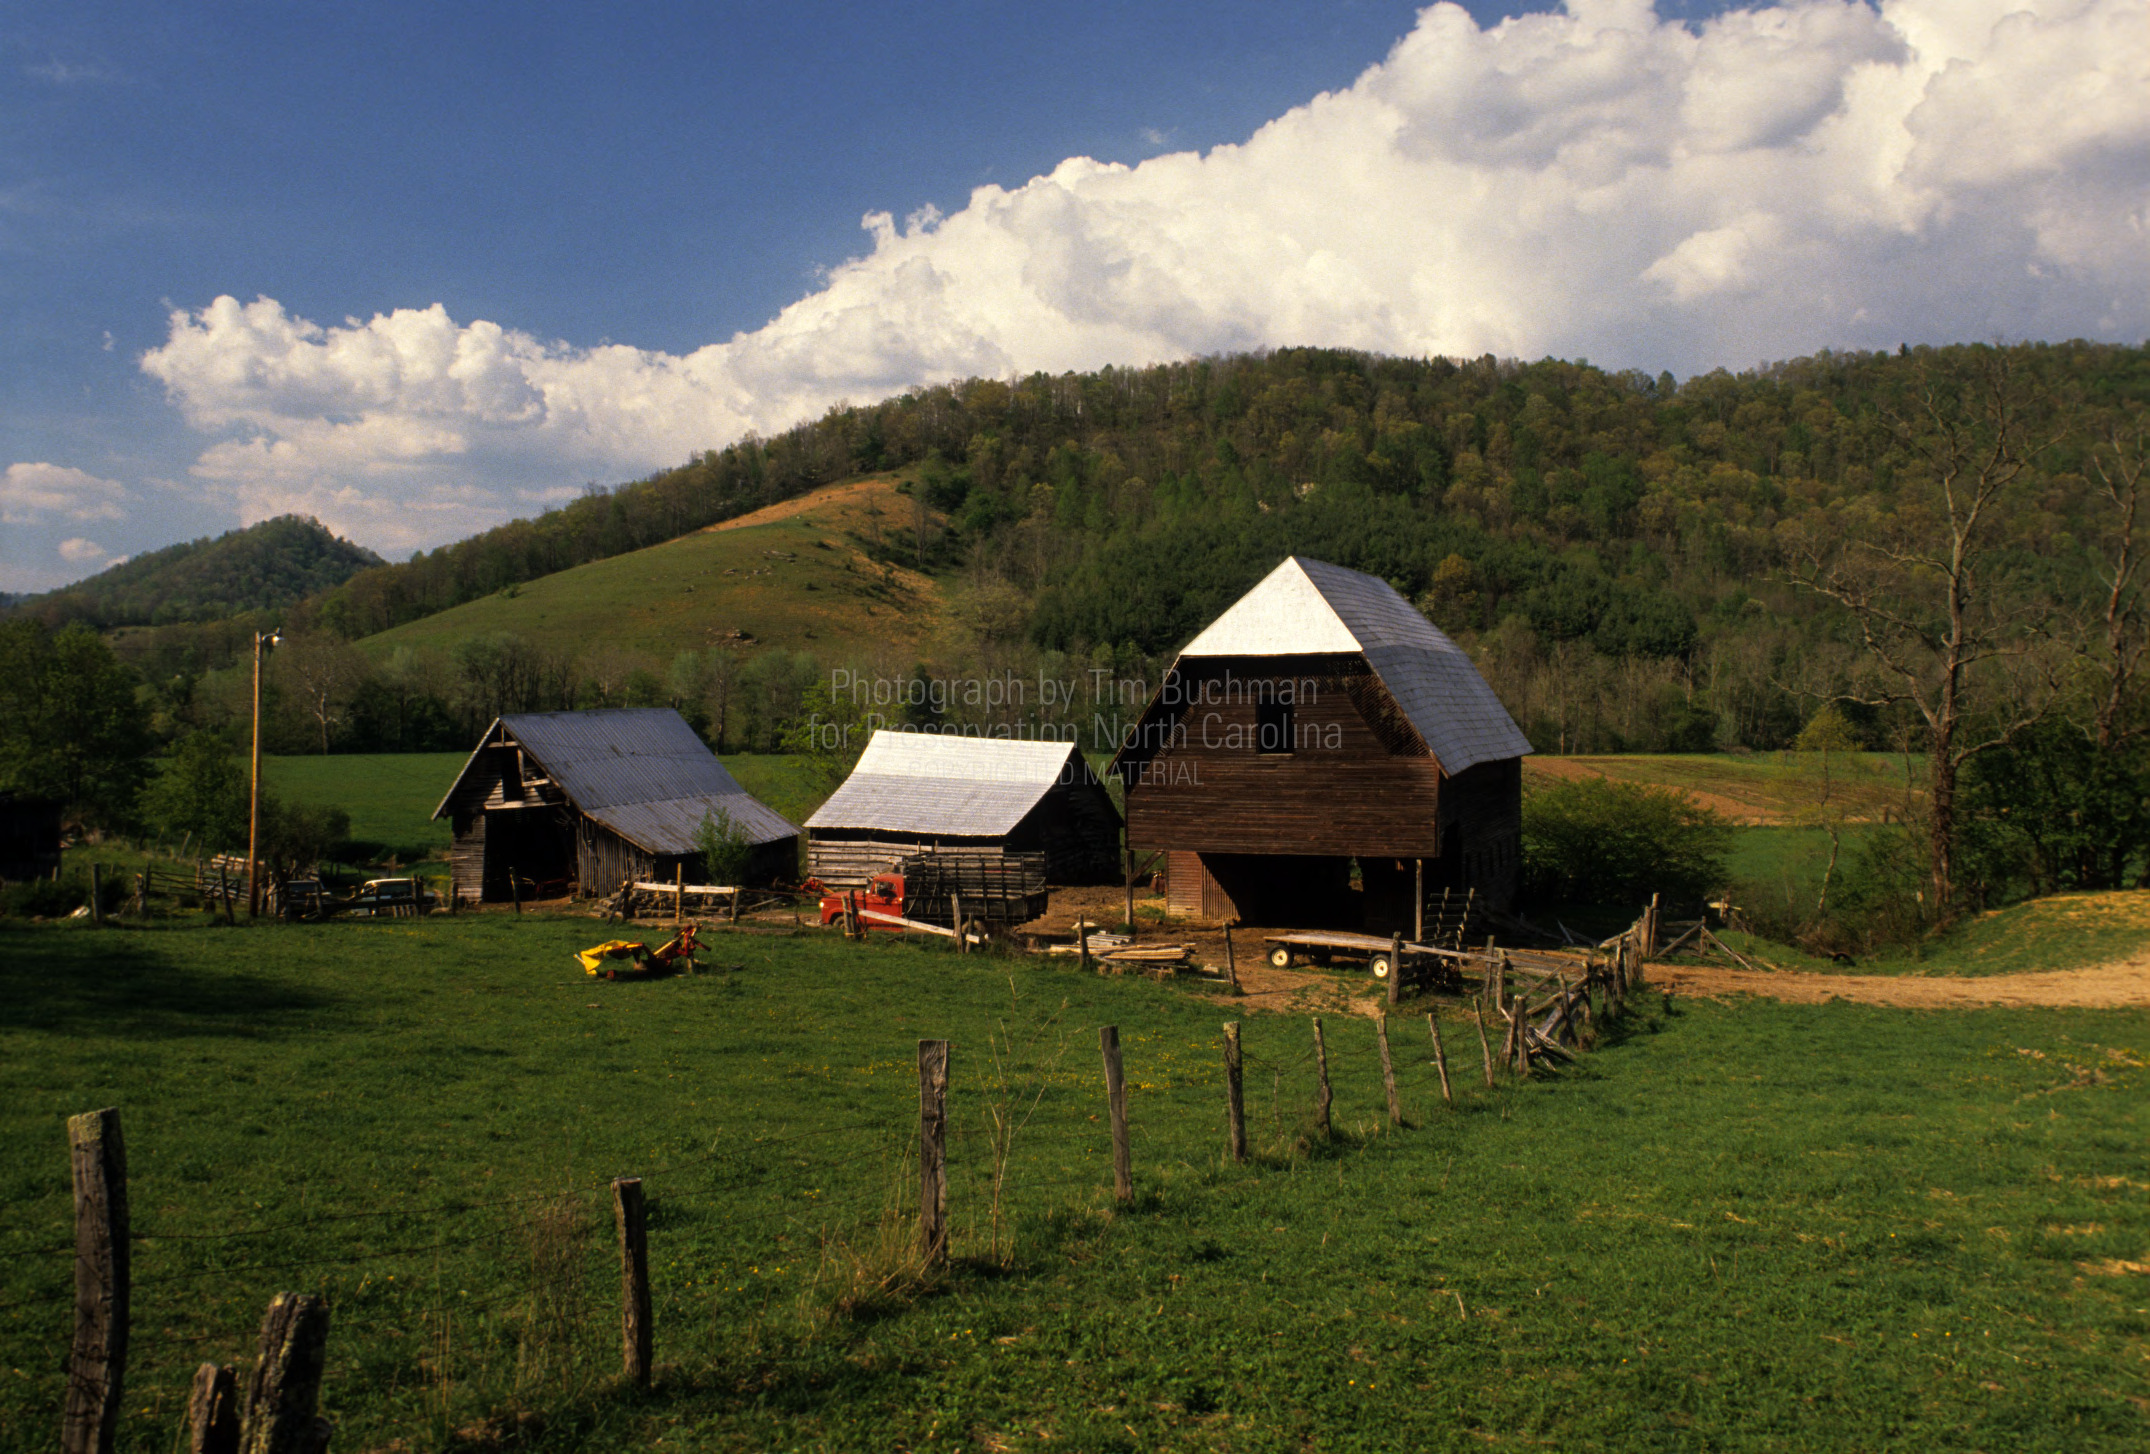 valle crucis singles dating site The cub, aka valle crucis 7-miler, showcases the beautiful mountain community and countryside of valle crucis, nc this 7-mile mountain road race will begin at.